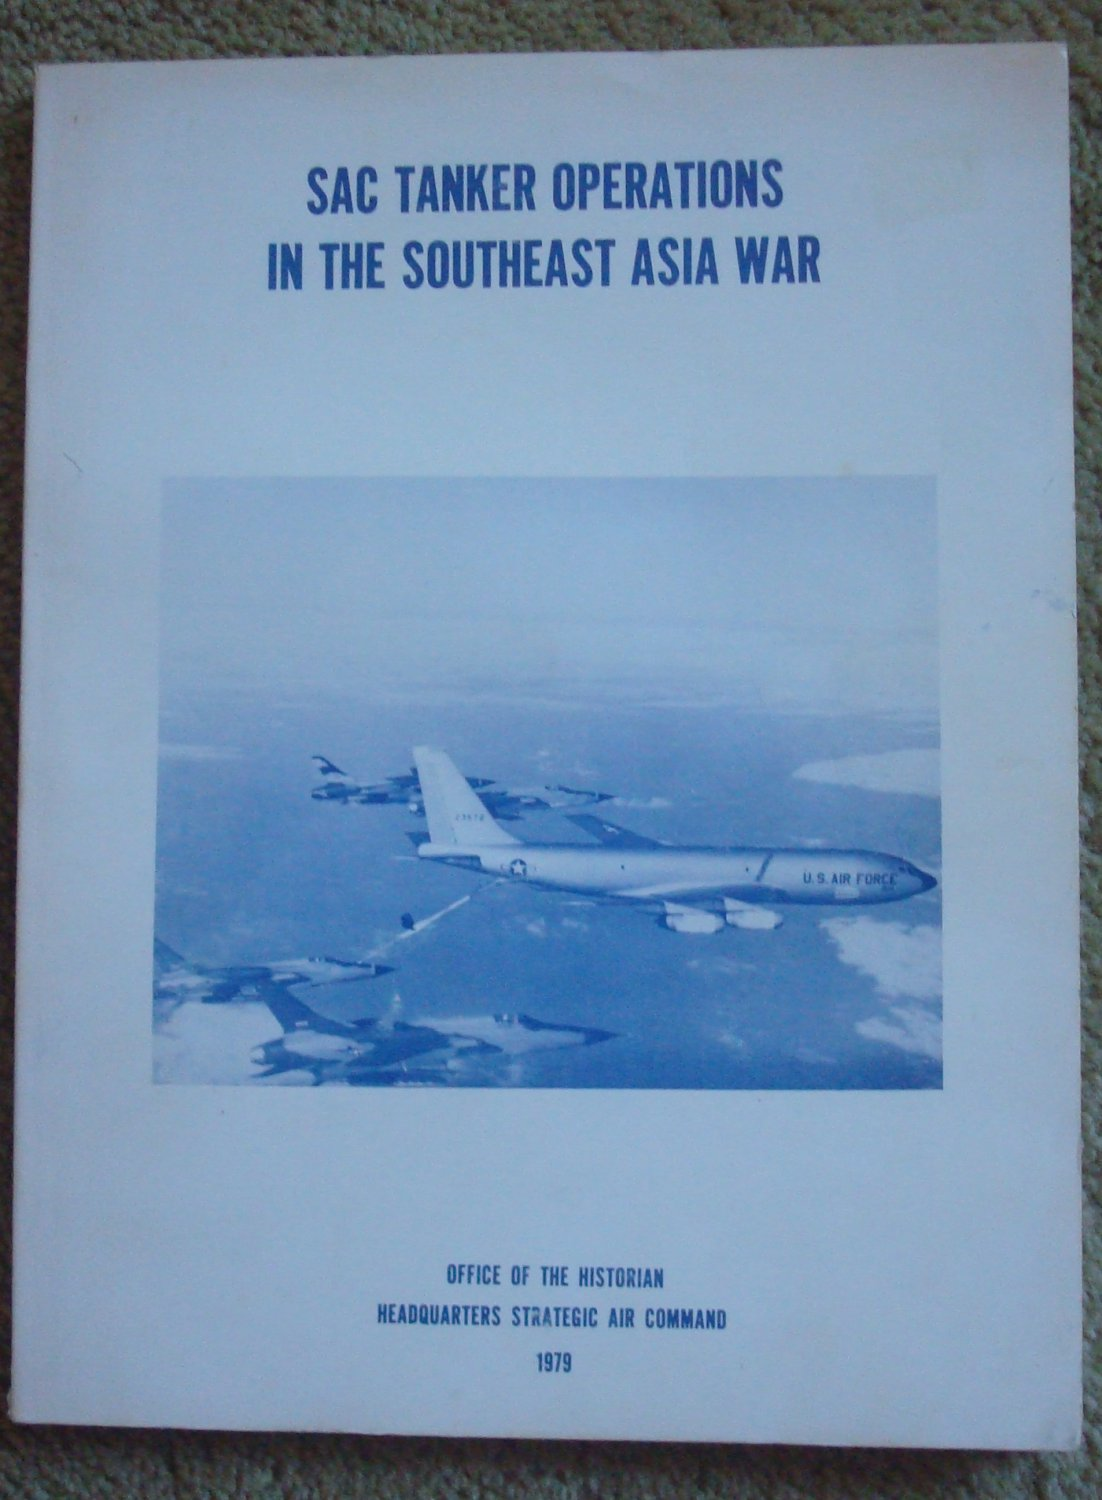 SAC Tanker Operations in the Southeast Asia War